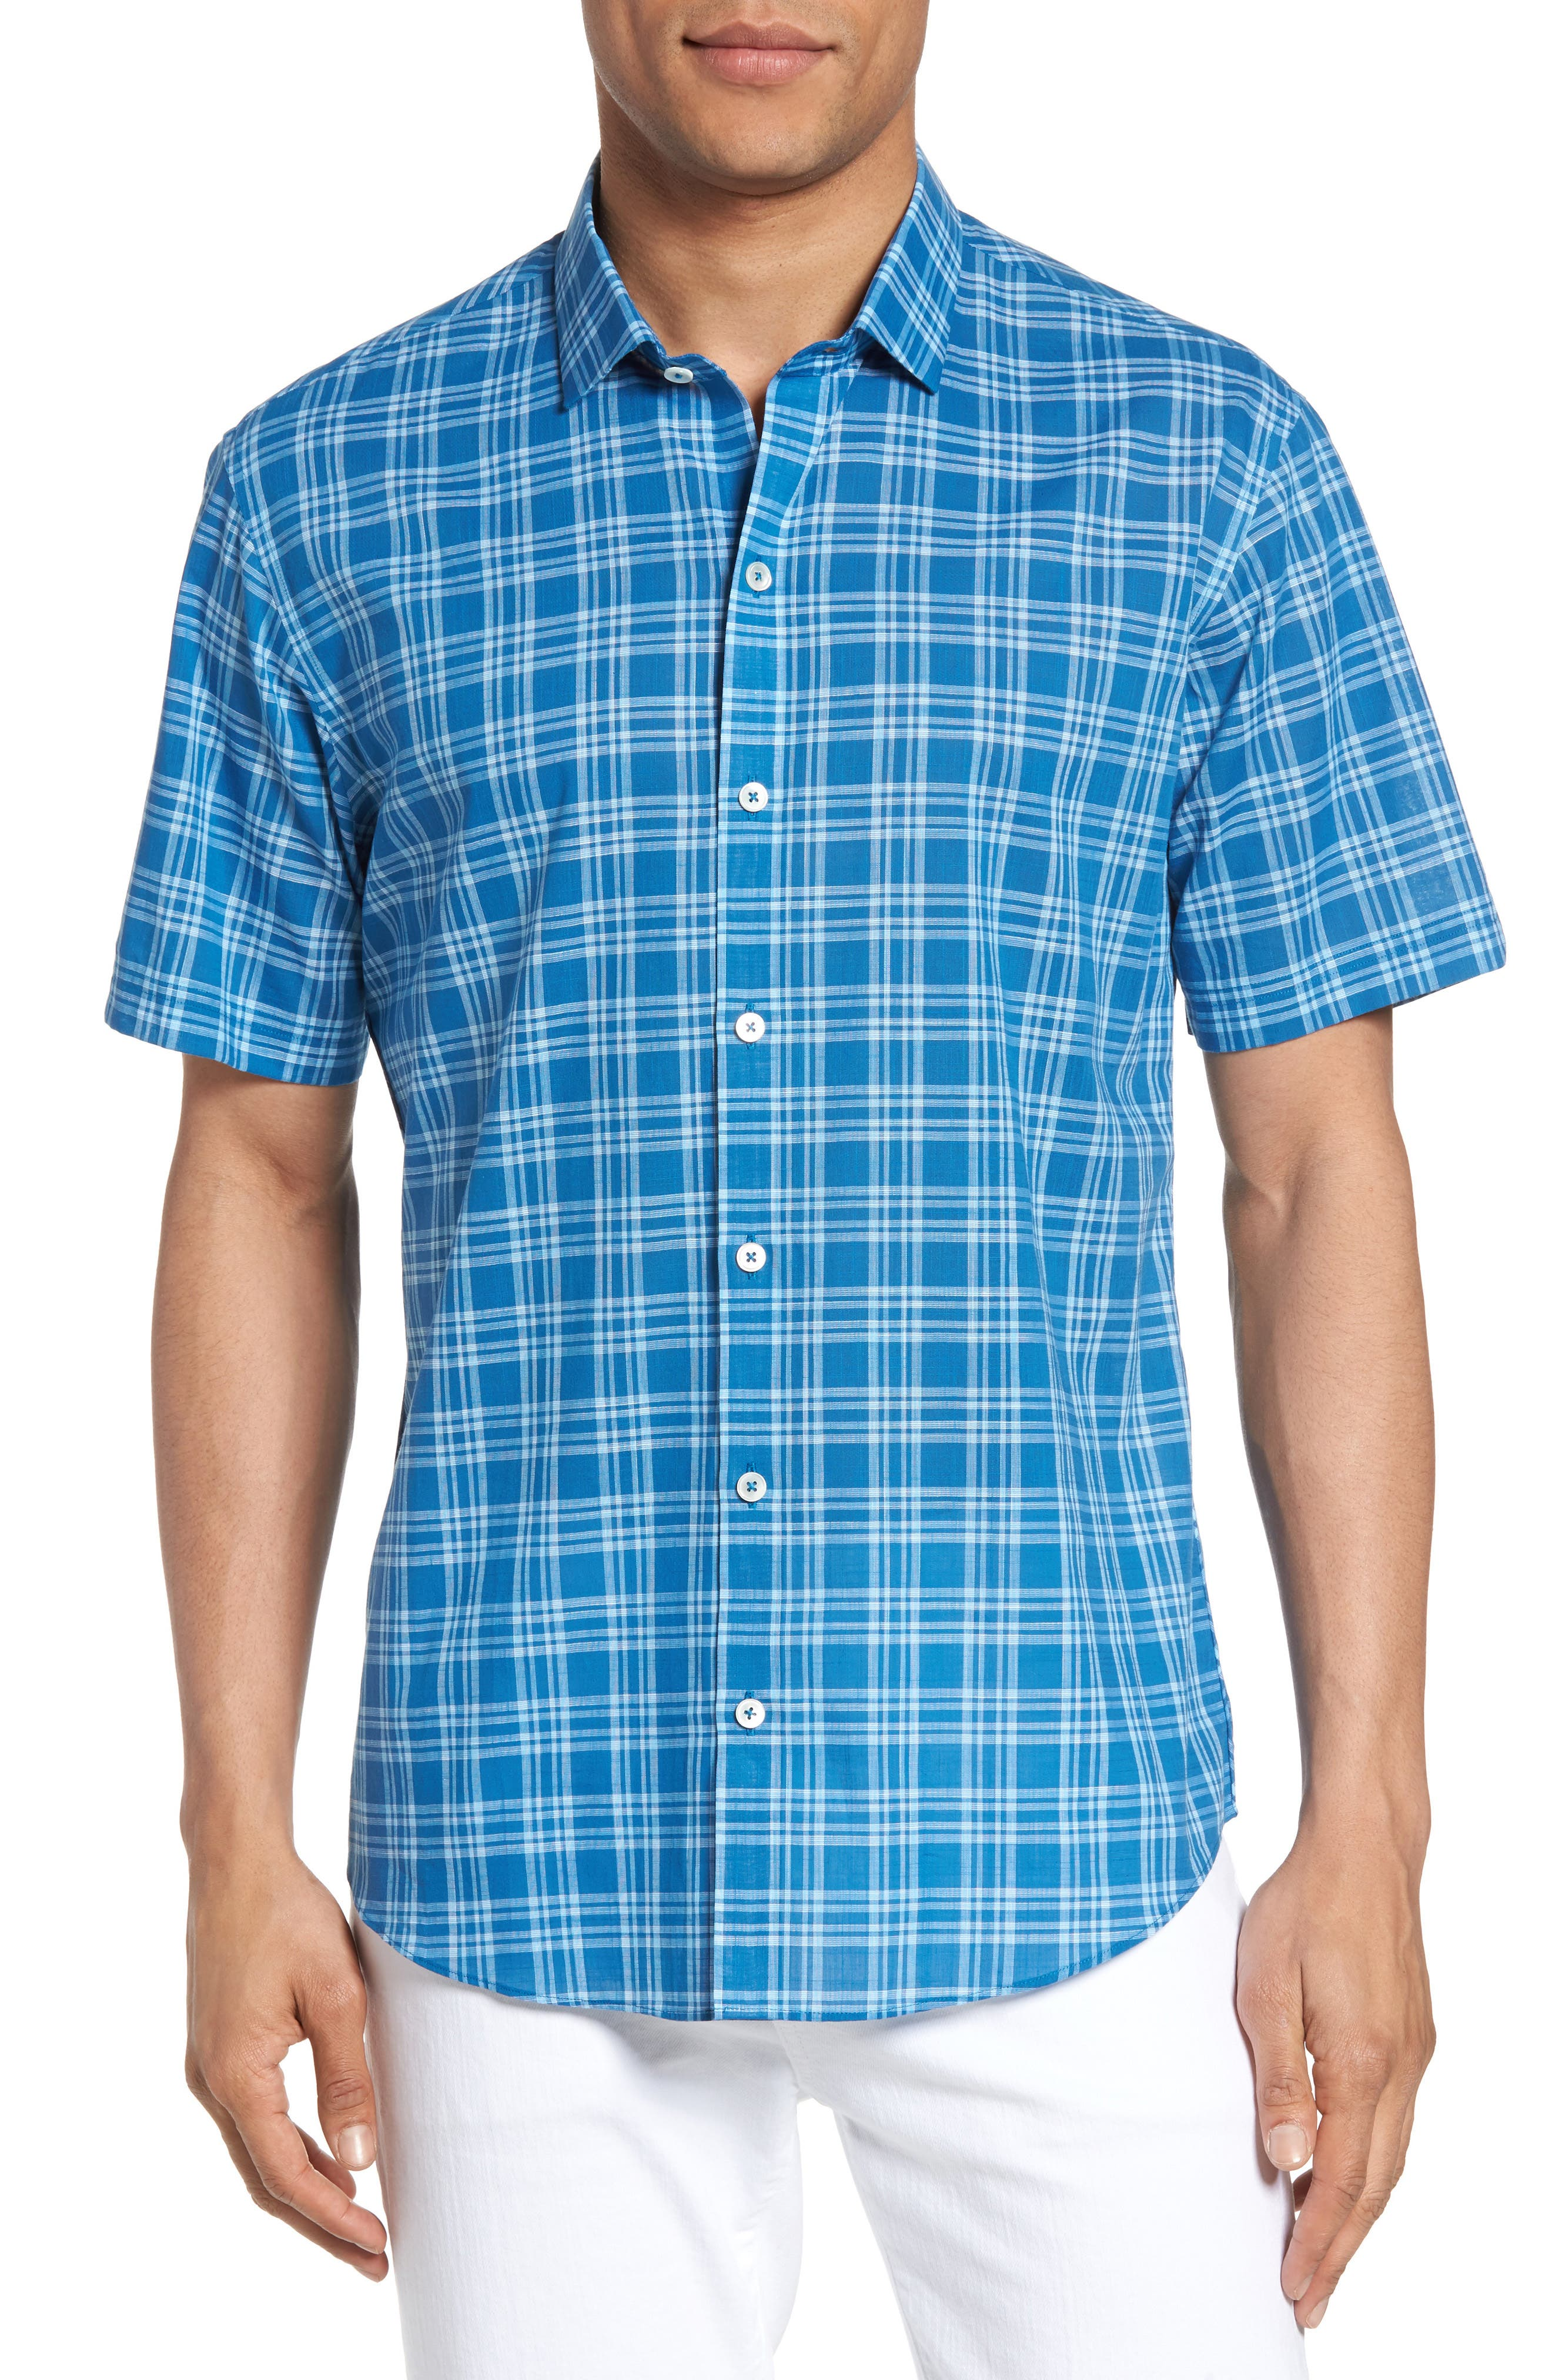 Kirchner Plaid Sport Shirt,                         Main,                         color, 460